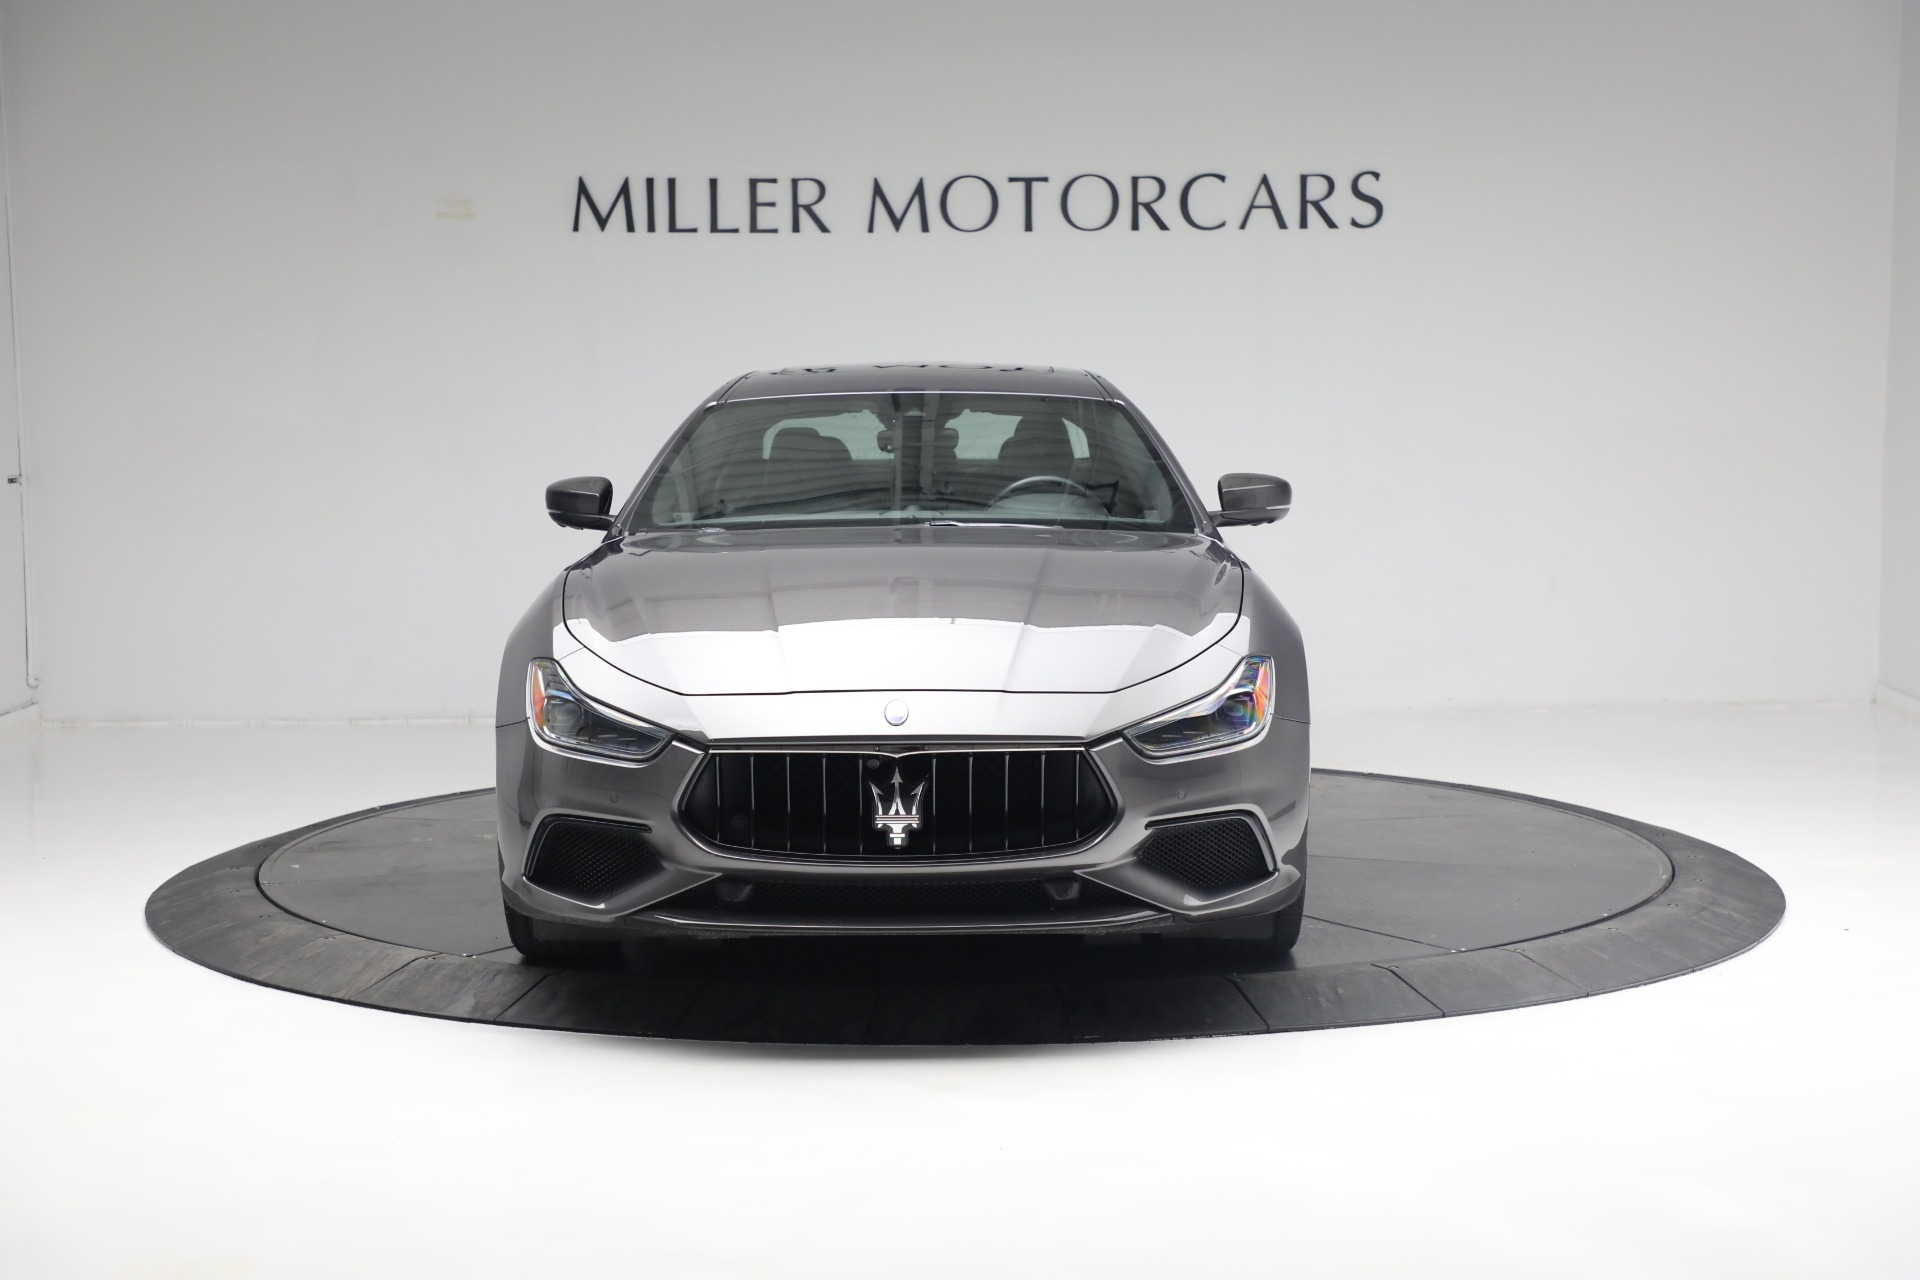 New 2019 Maserati Ghibli S Q4 GranSport For Sale In Westport, CT 2927_p12